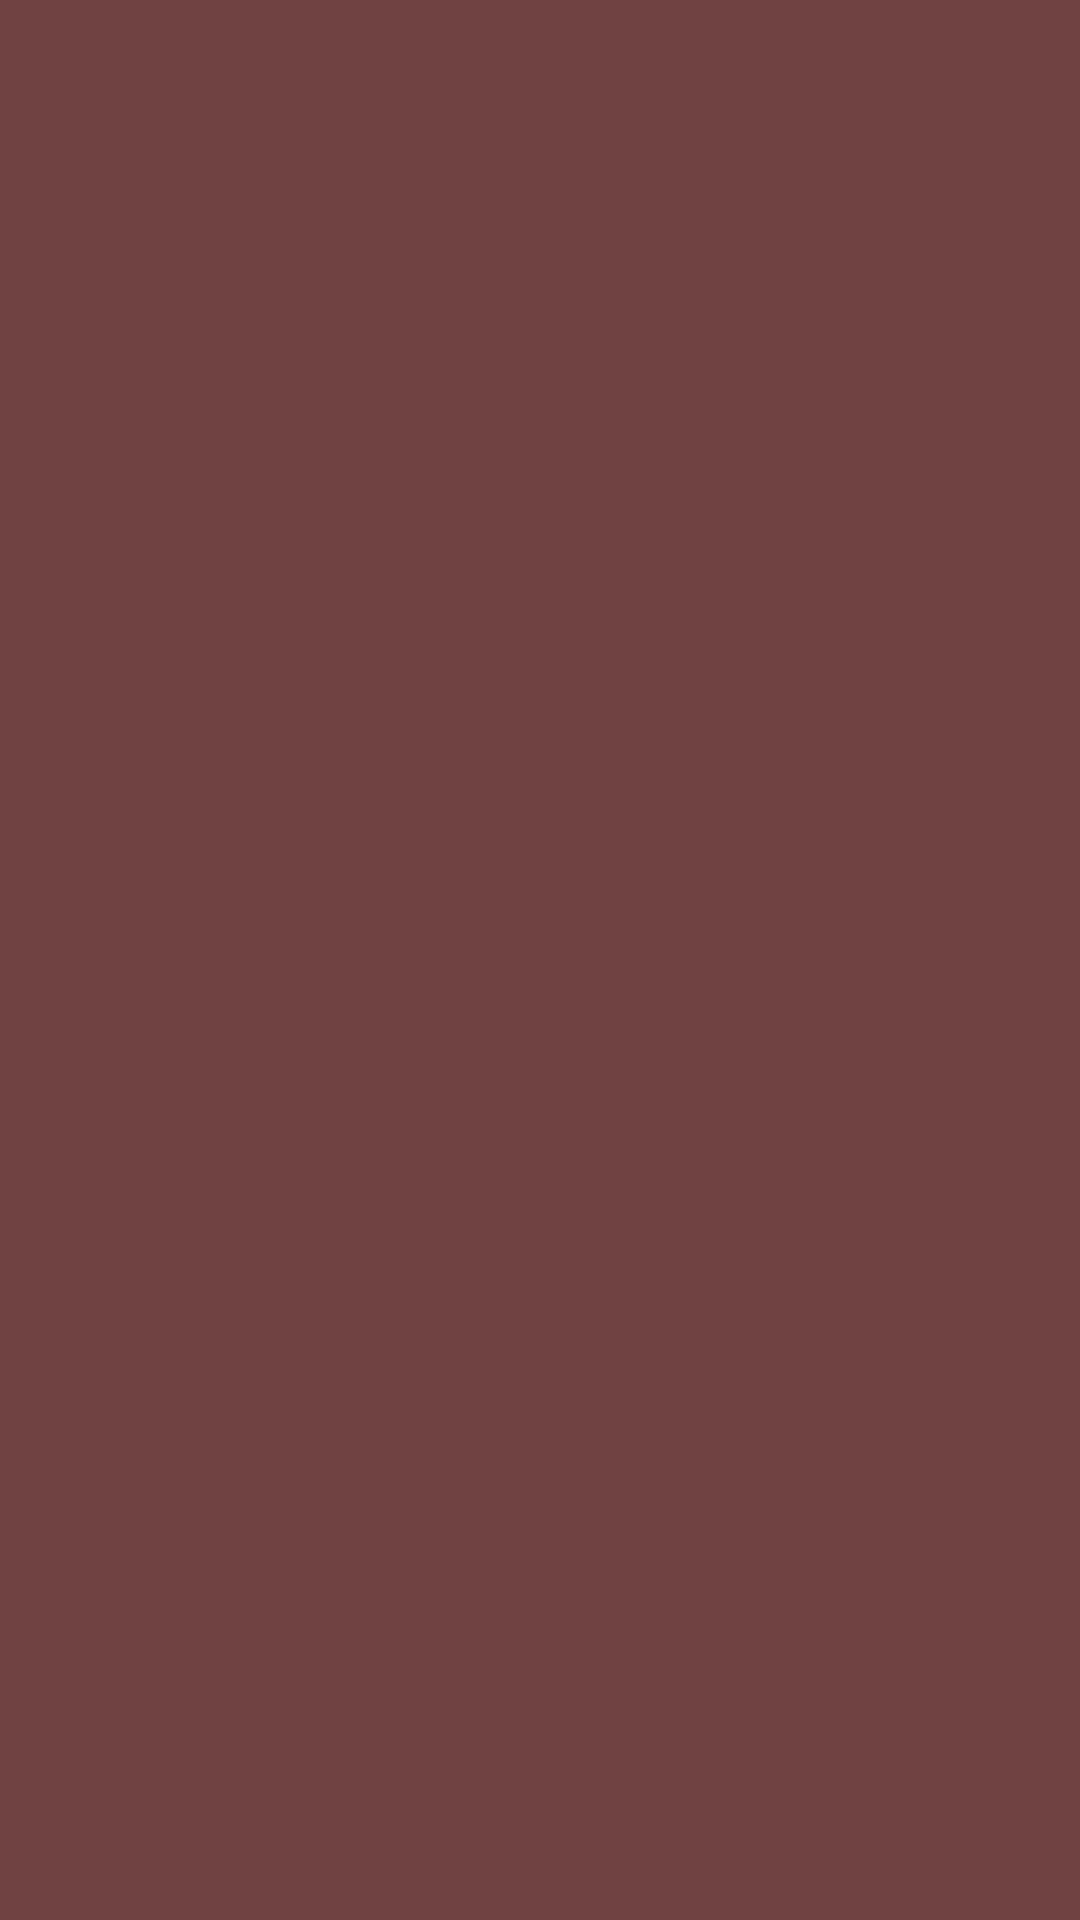 1080x1920 Deep Coffee Solid Color Background